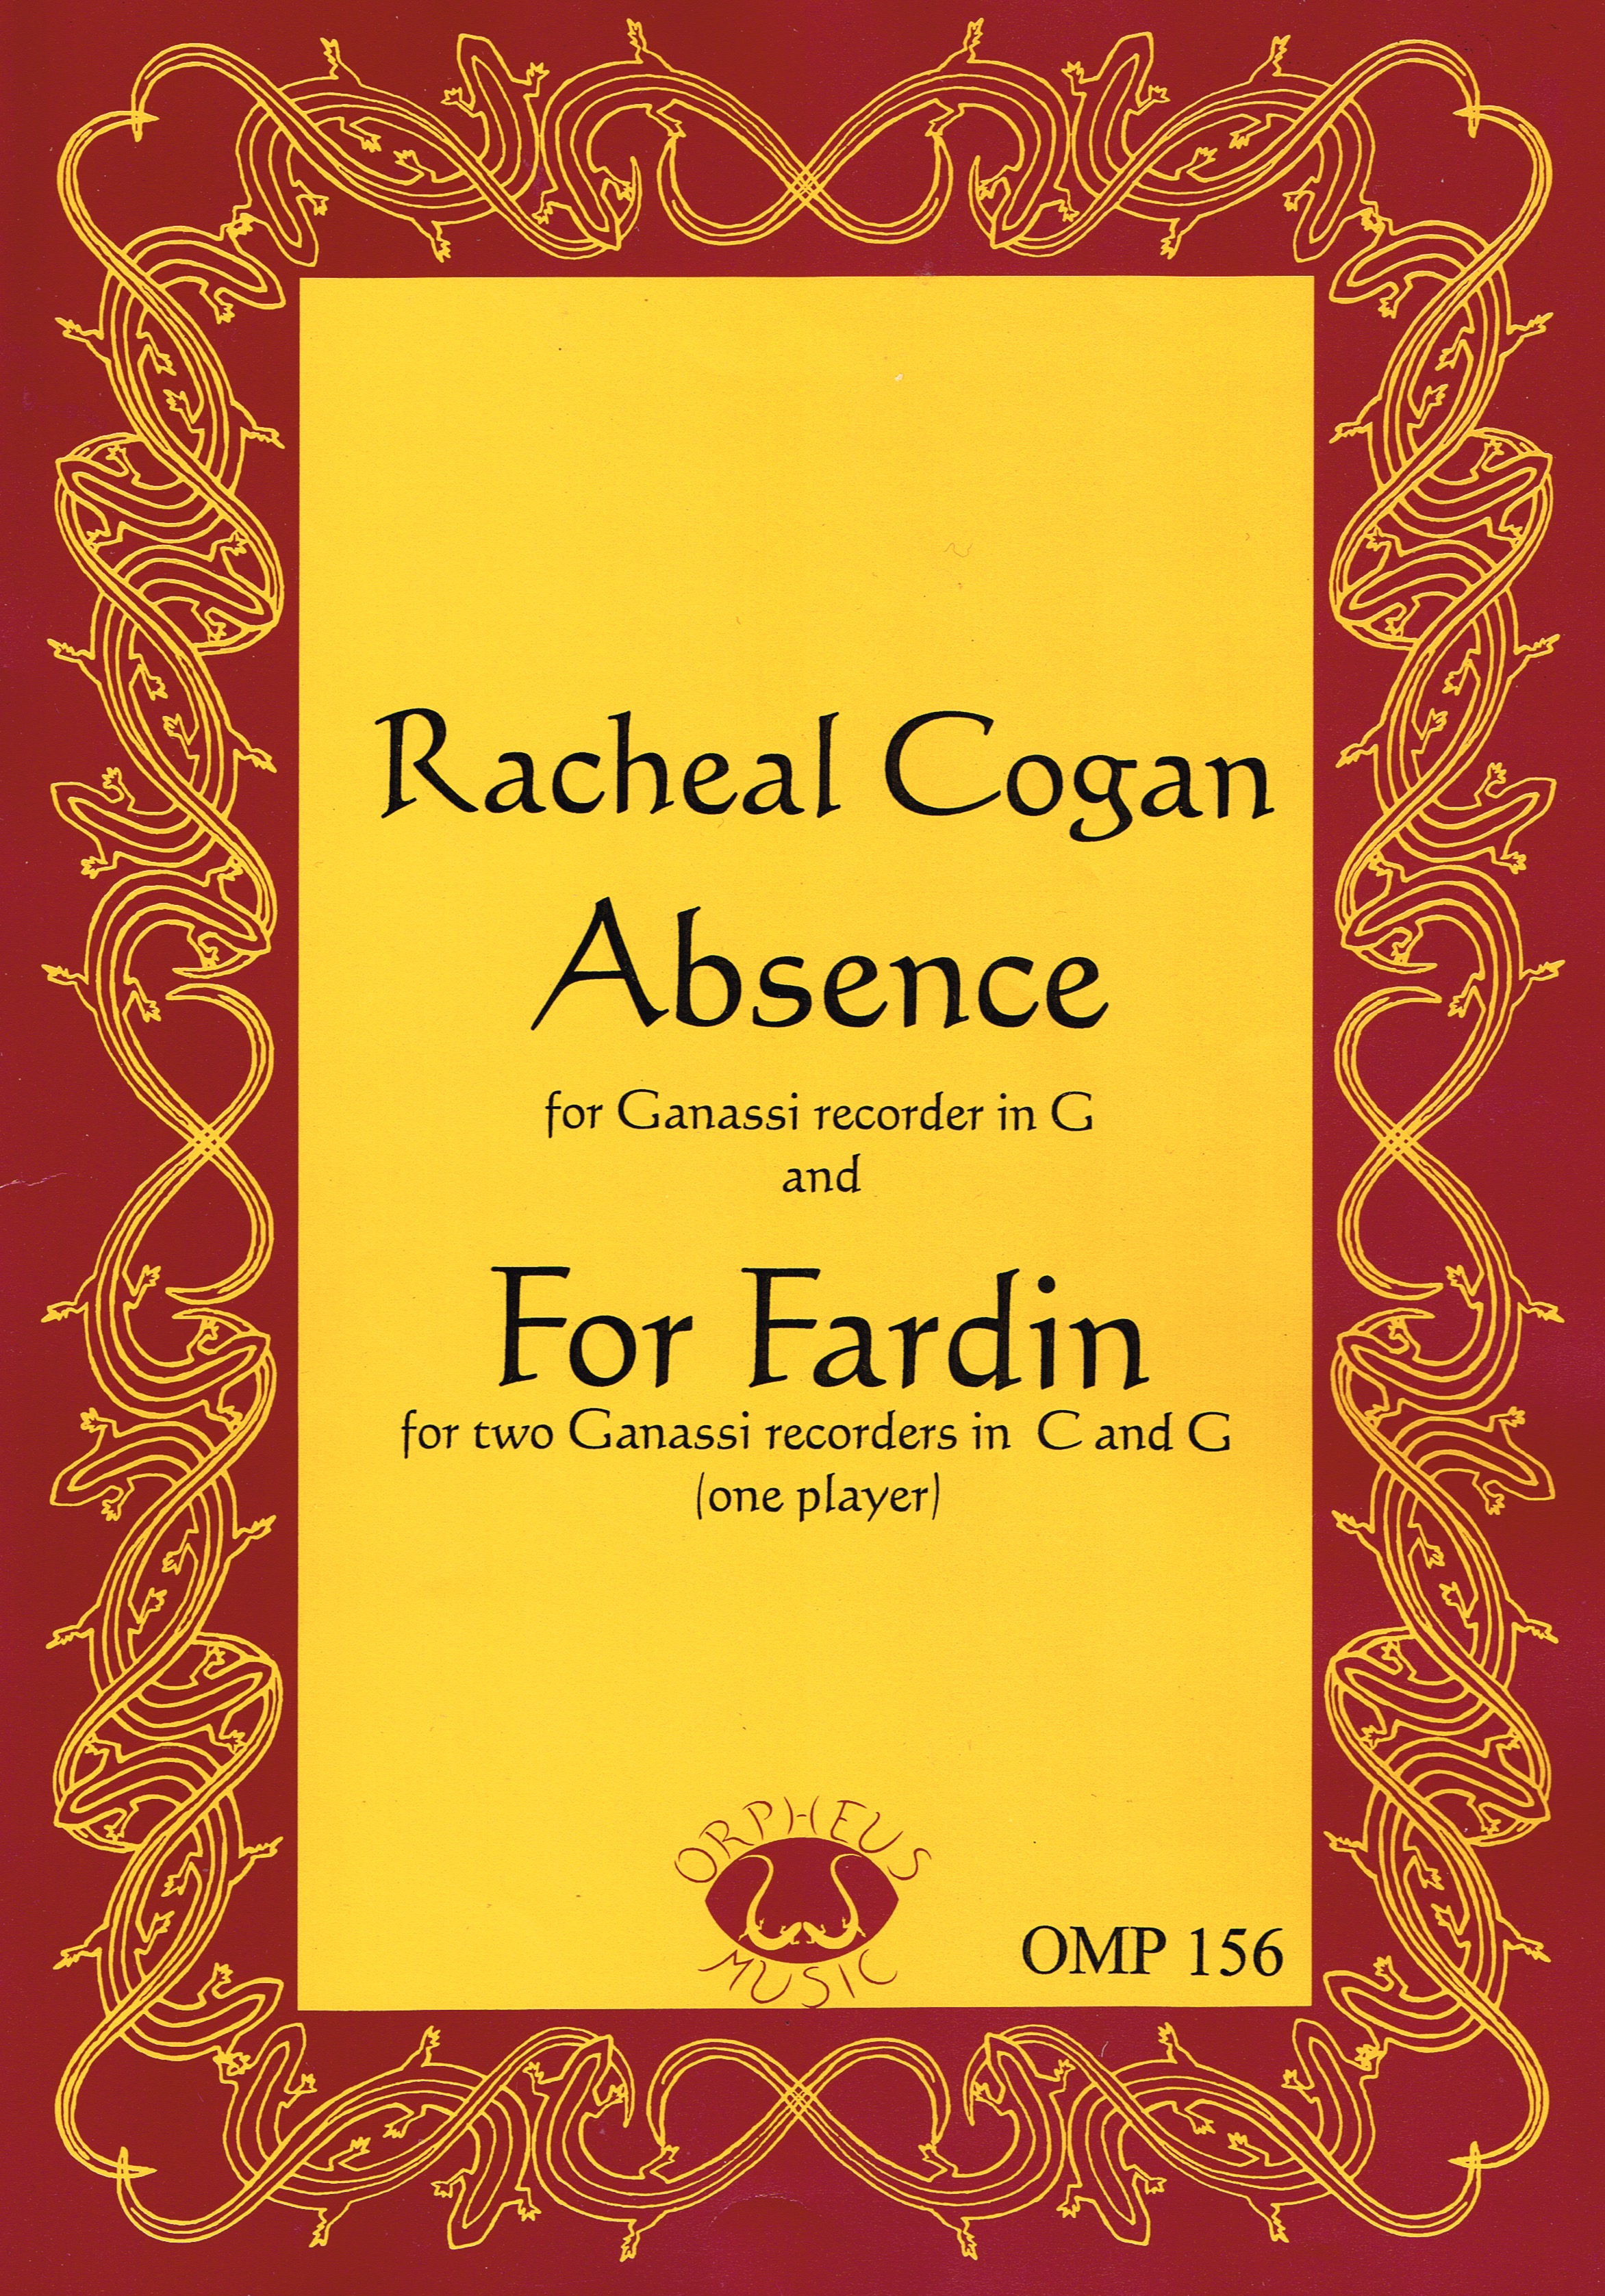 ABSENCE: for Ganassi recorder in G FOR FARDIN: for two Ganassi recorders in C & G (one player) Available as a download and sheet music. Orpheus Music, OMP 156 (2006).